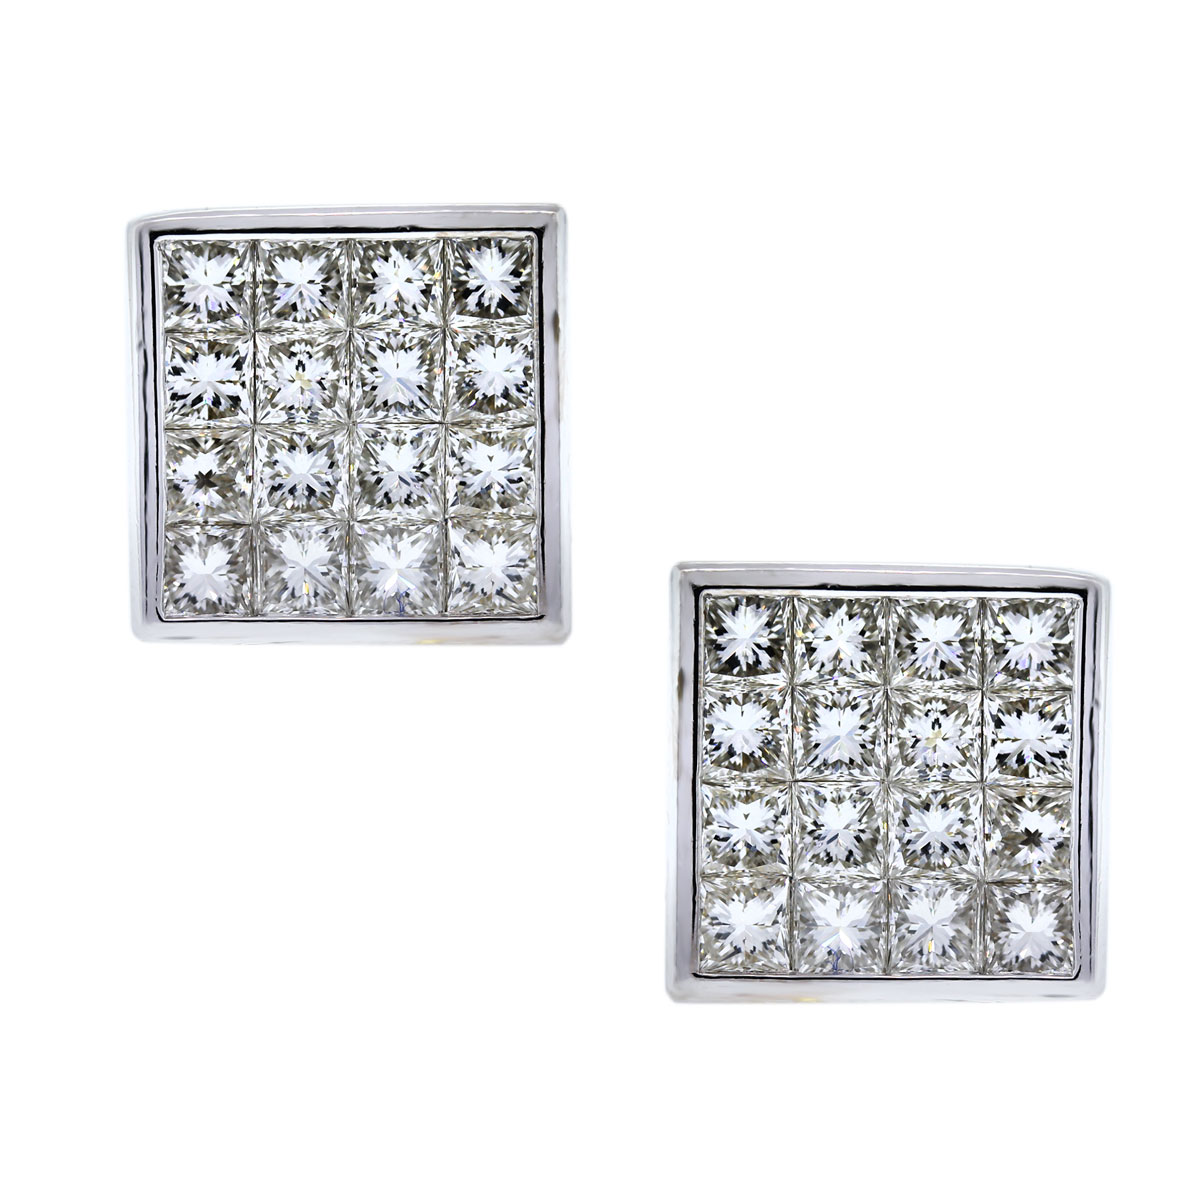 18k White Gold Invisibly Set Diamond Earrings